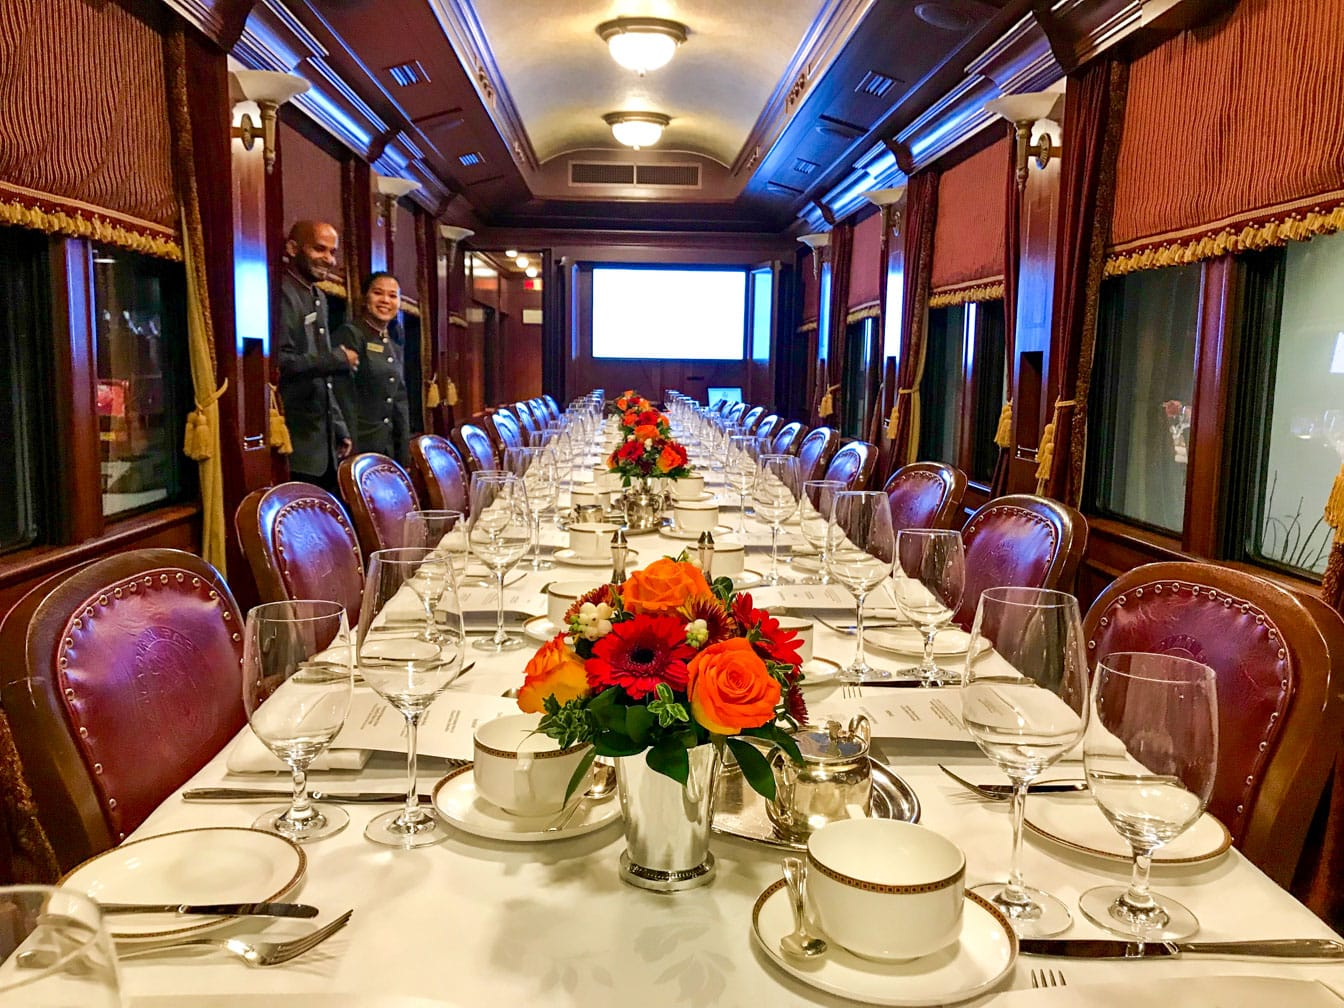 Dining car on the Royal Canadian Pacific train